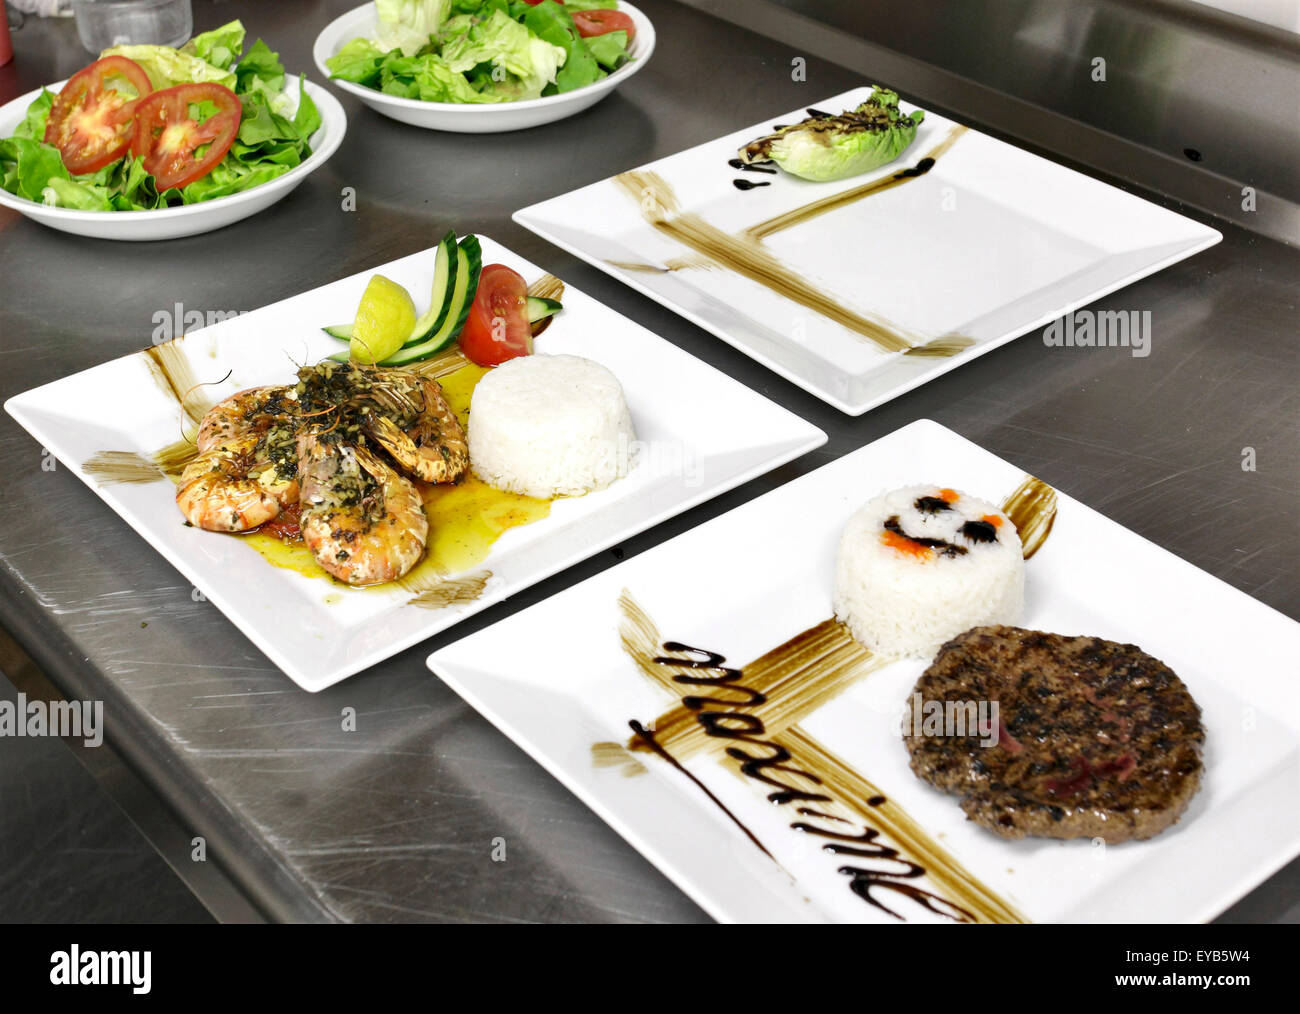 italian food: shrimps, vegetables and burger in square dish - Stock Image